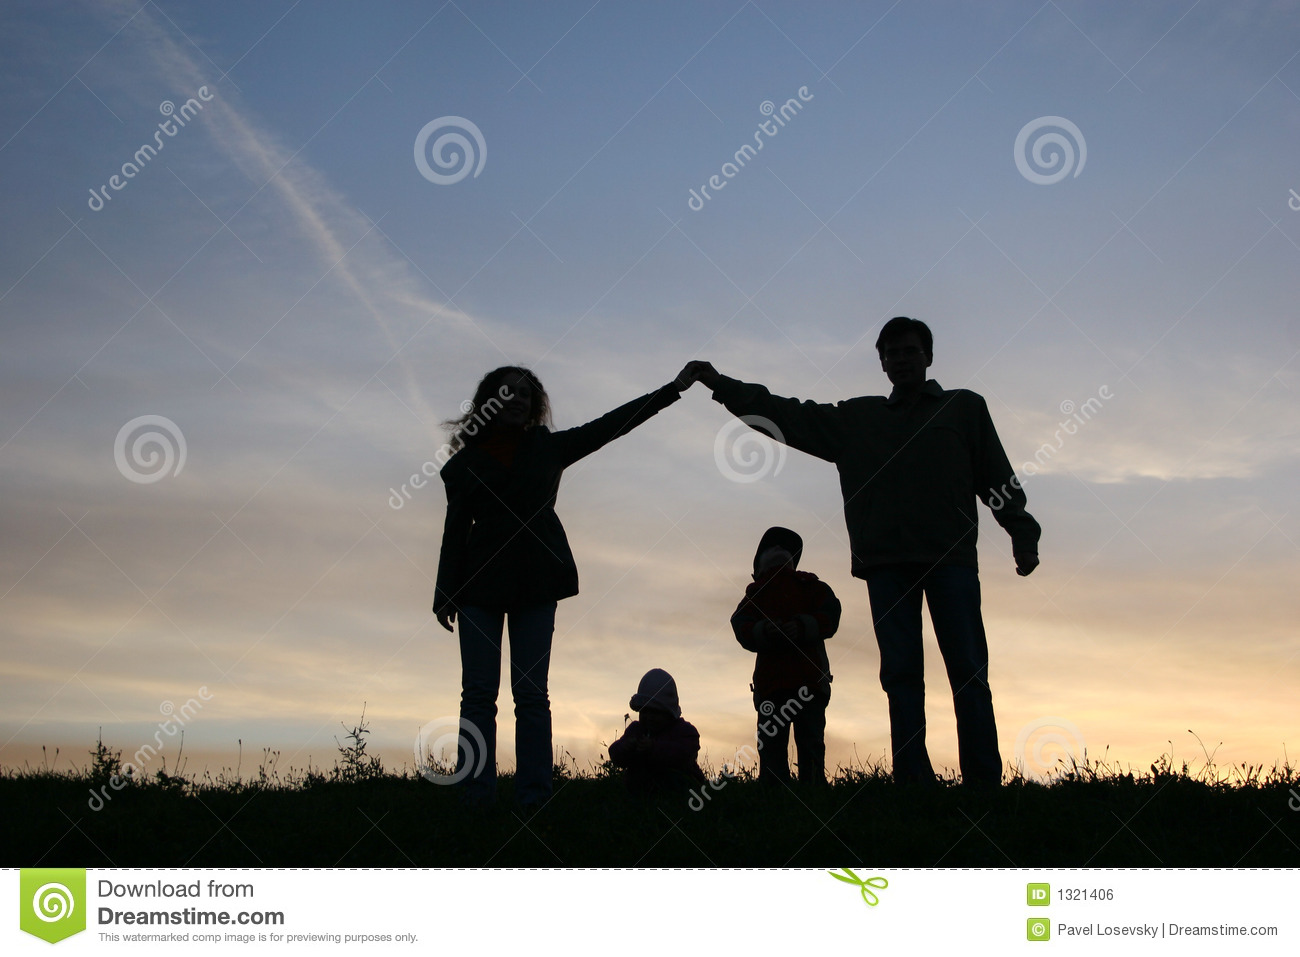 silhouette-family-house-1321406.jpg